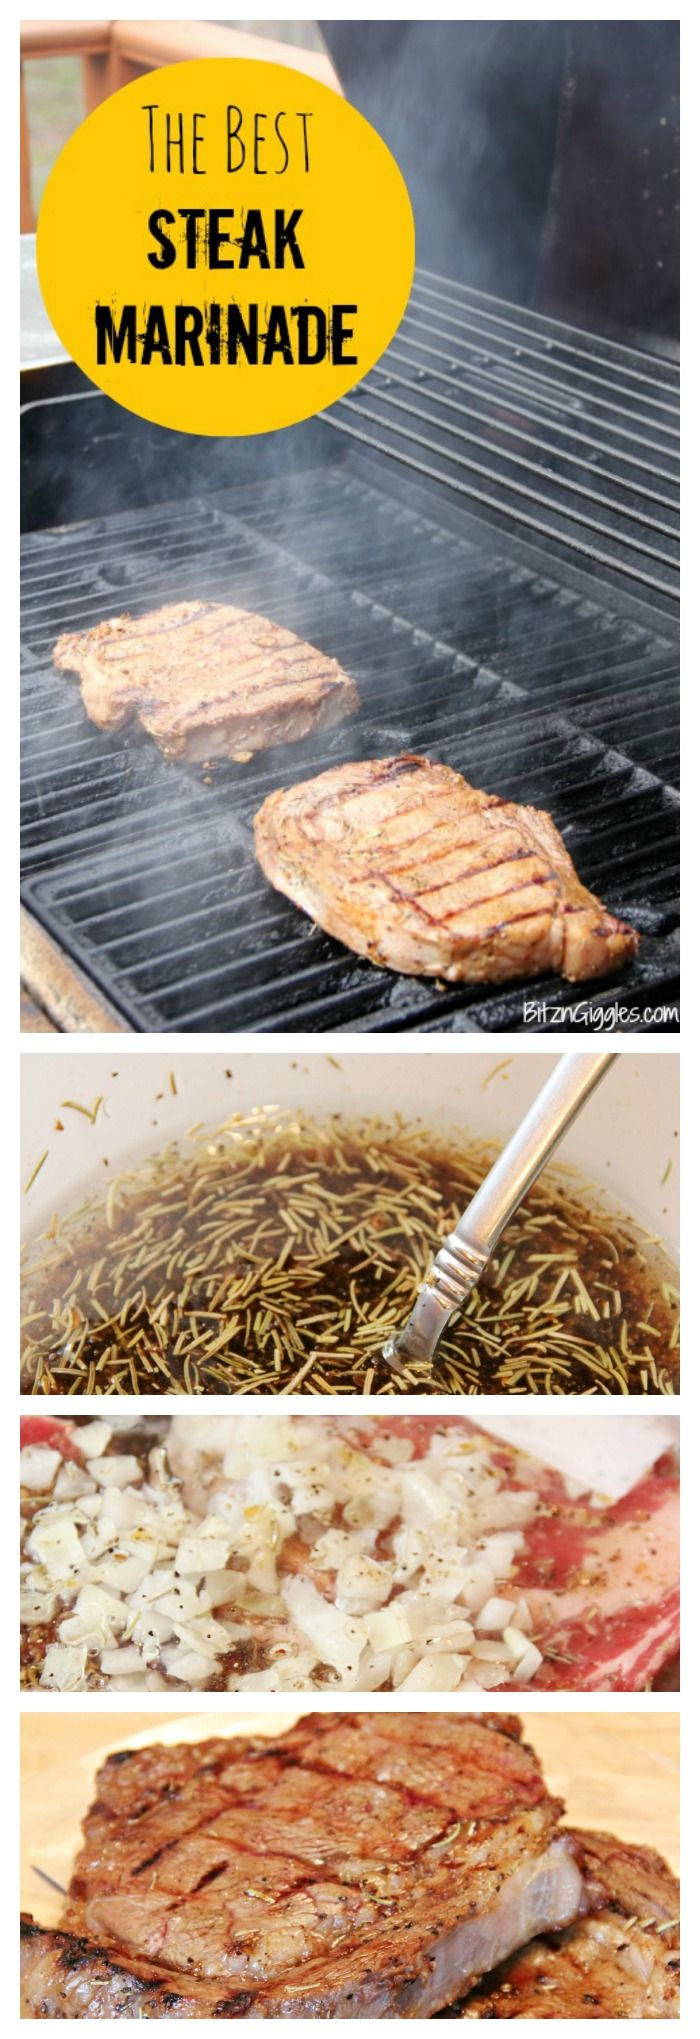 The Best Steak Marinade! So easy to put together - in hours the steak soaks up all of the liquid and the result is a delicious, tender piece of meat!